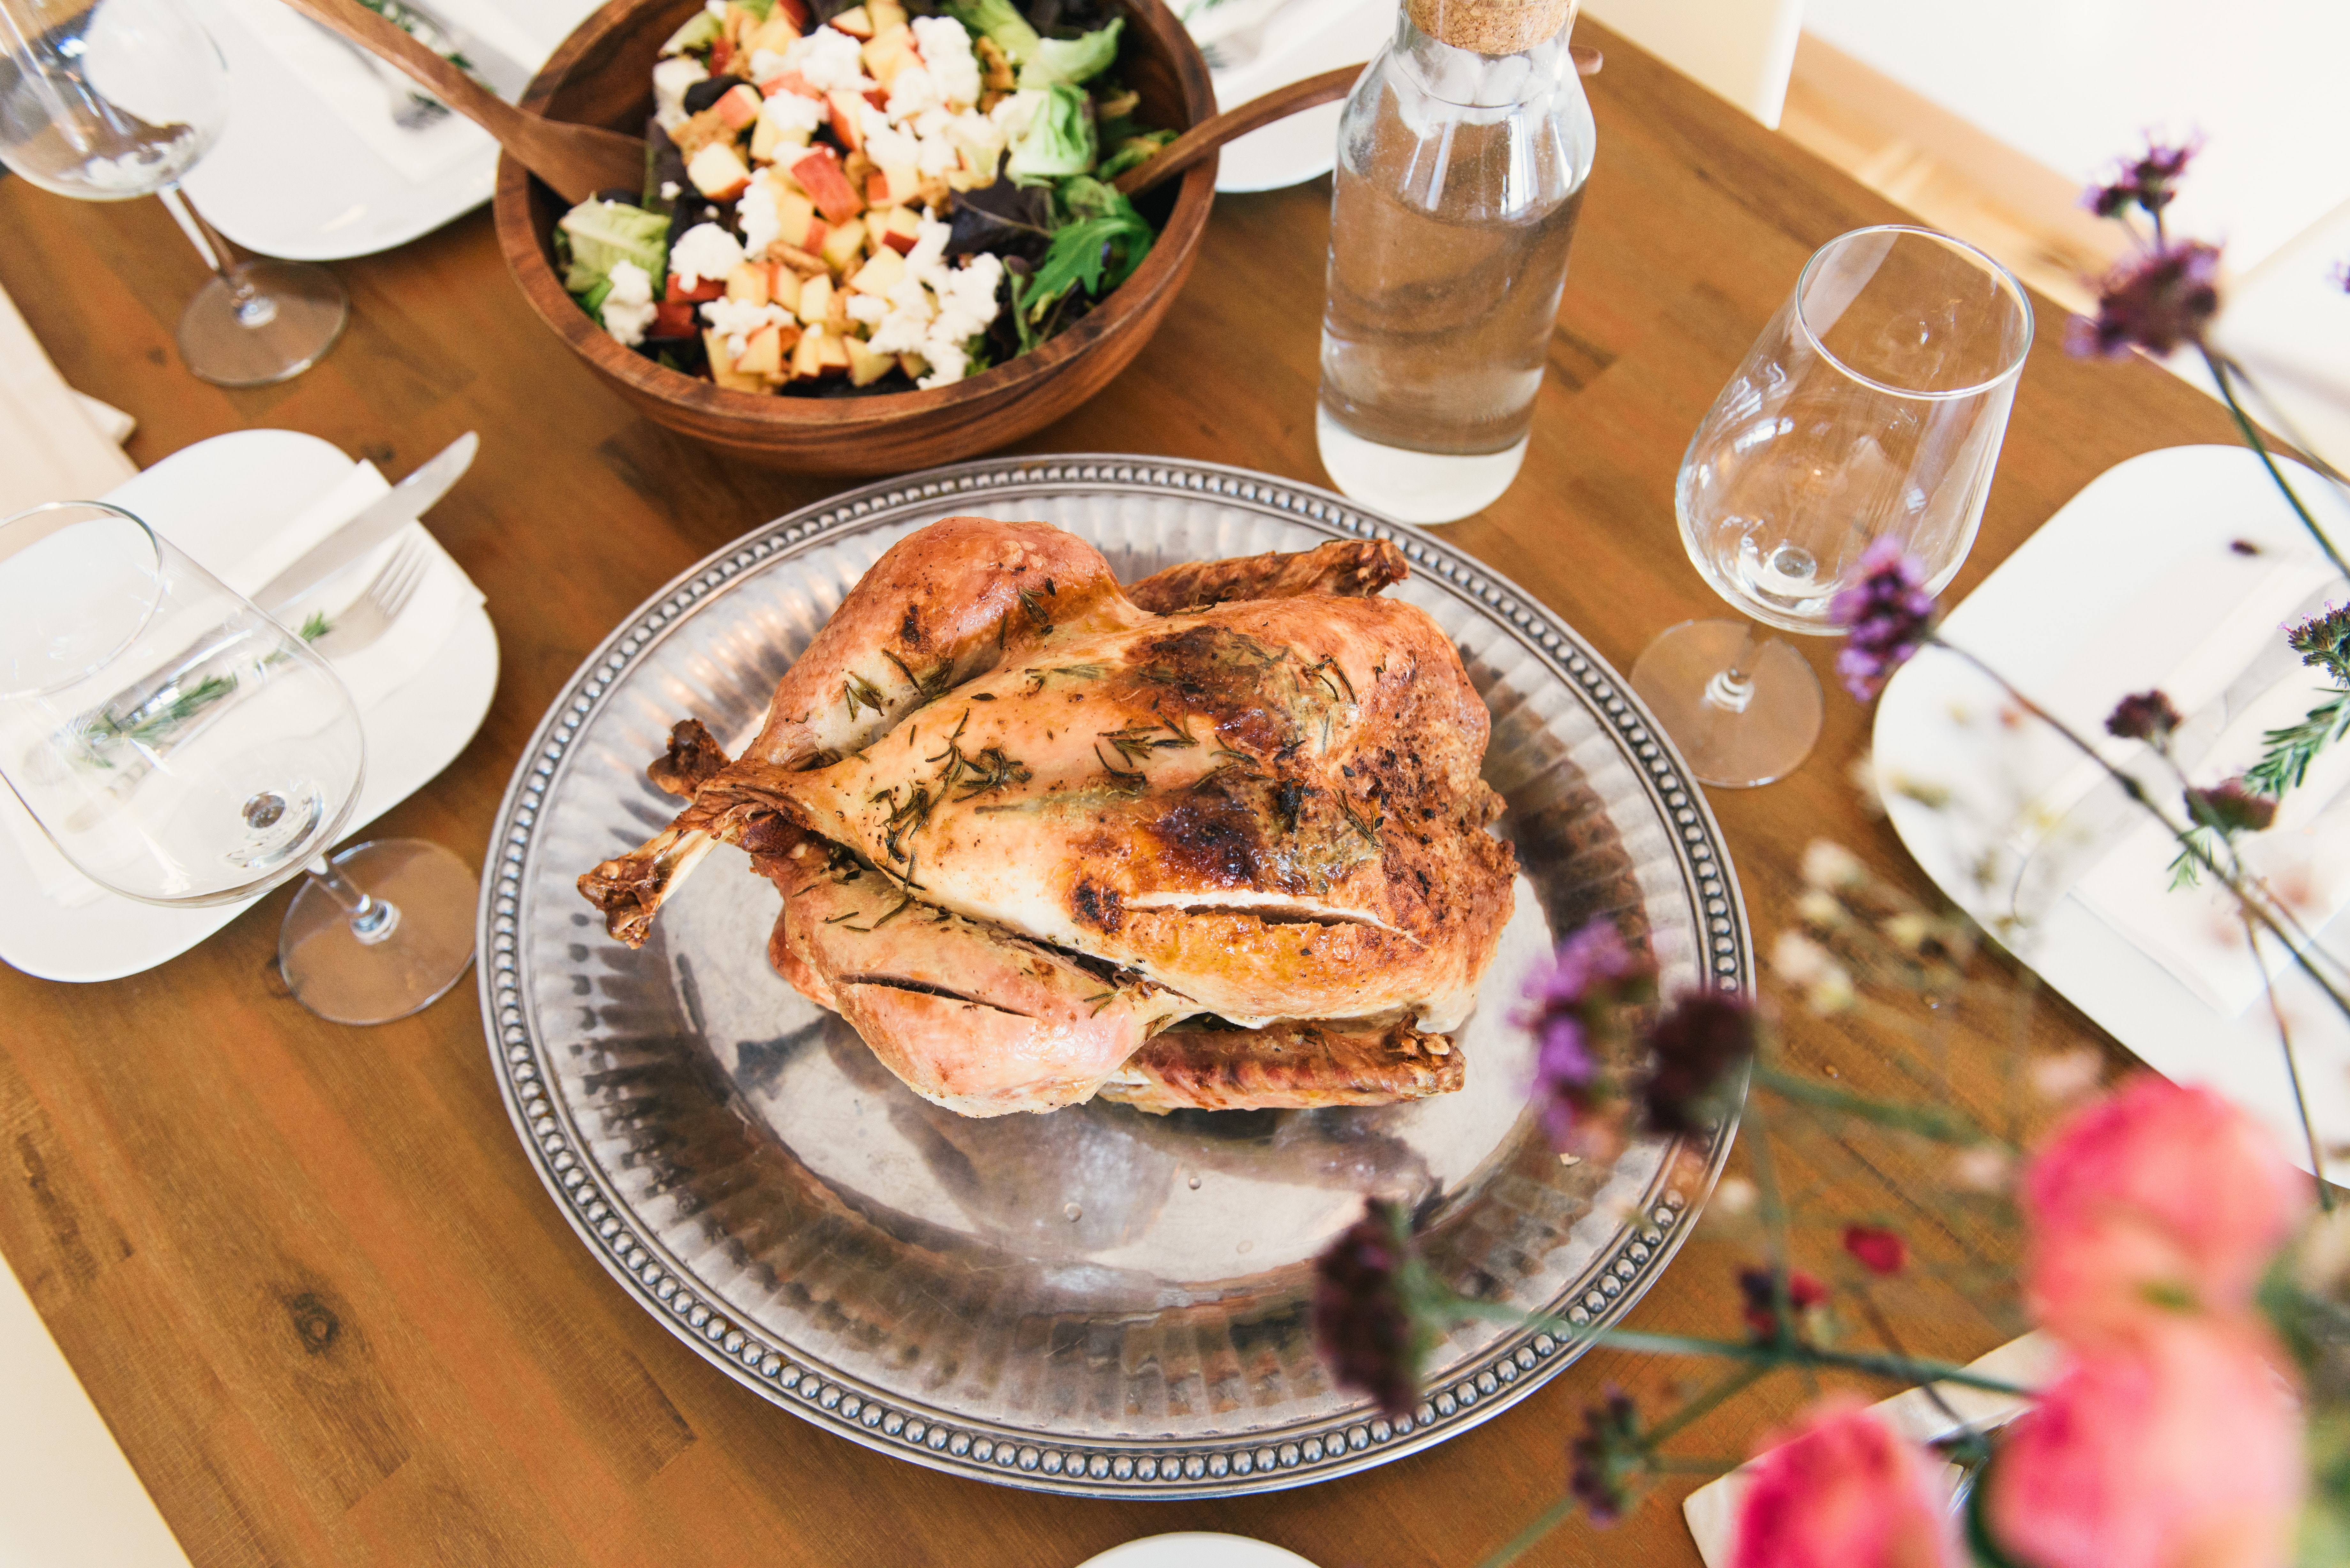 Can A High Protein Diet Help Reduce Body Fat Percentage In Women?